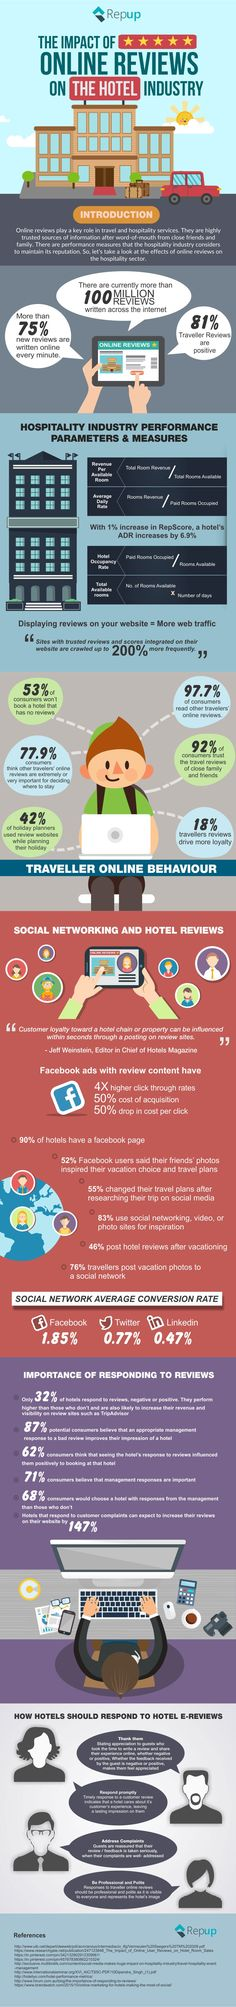 The Impact of Online Reviews on the Hospitality Industry [Infographic] | By Pranjal Prashar